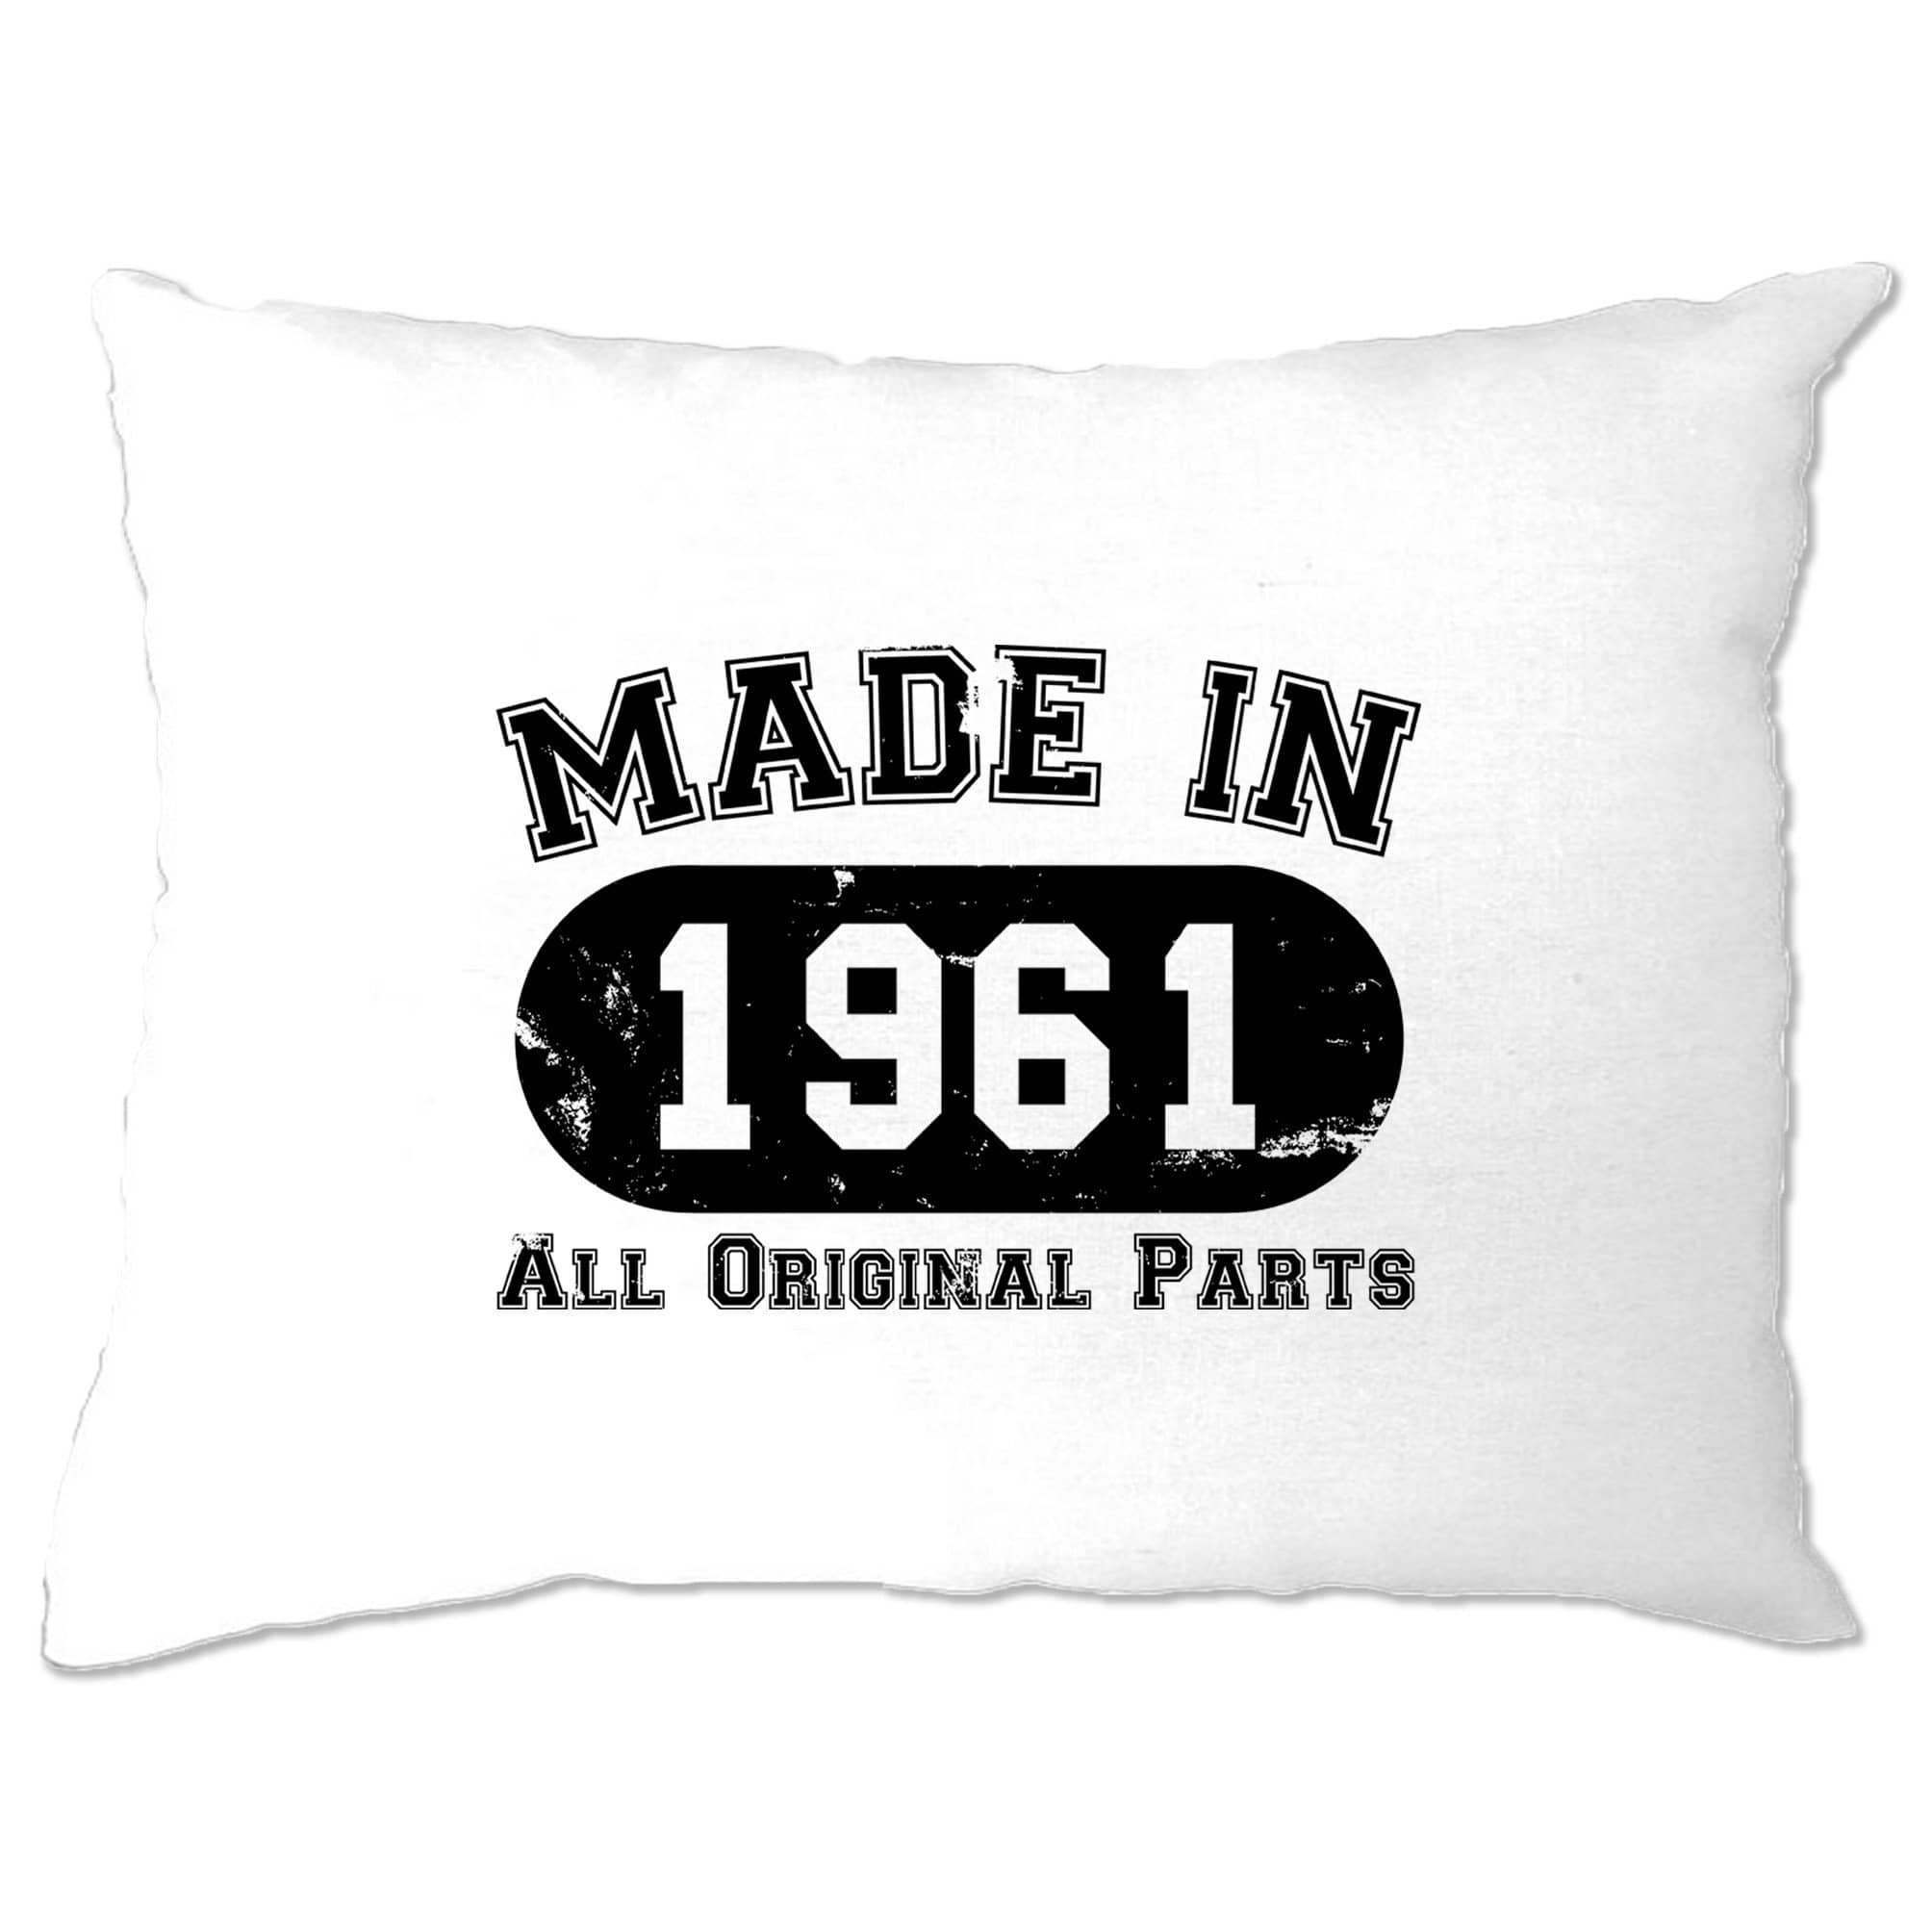 Made in 1961 All Original Parts Pillow Case [Distressed]